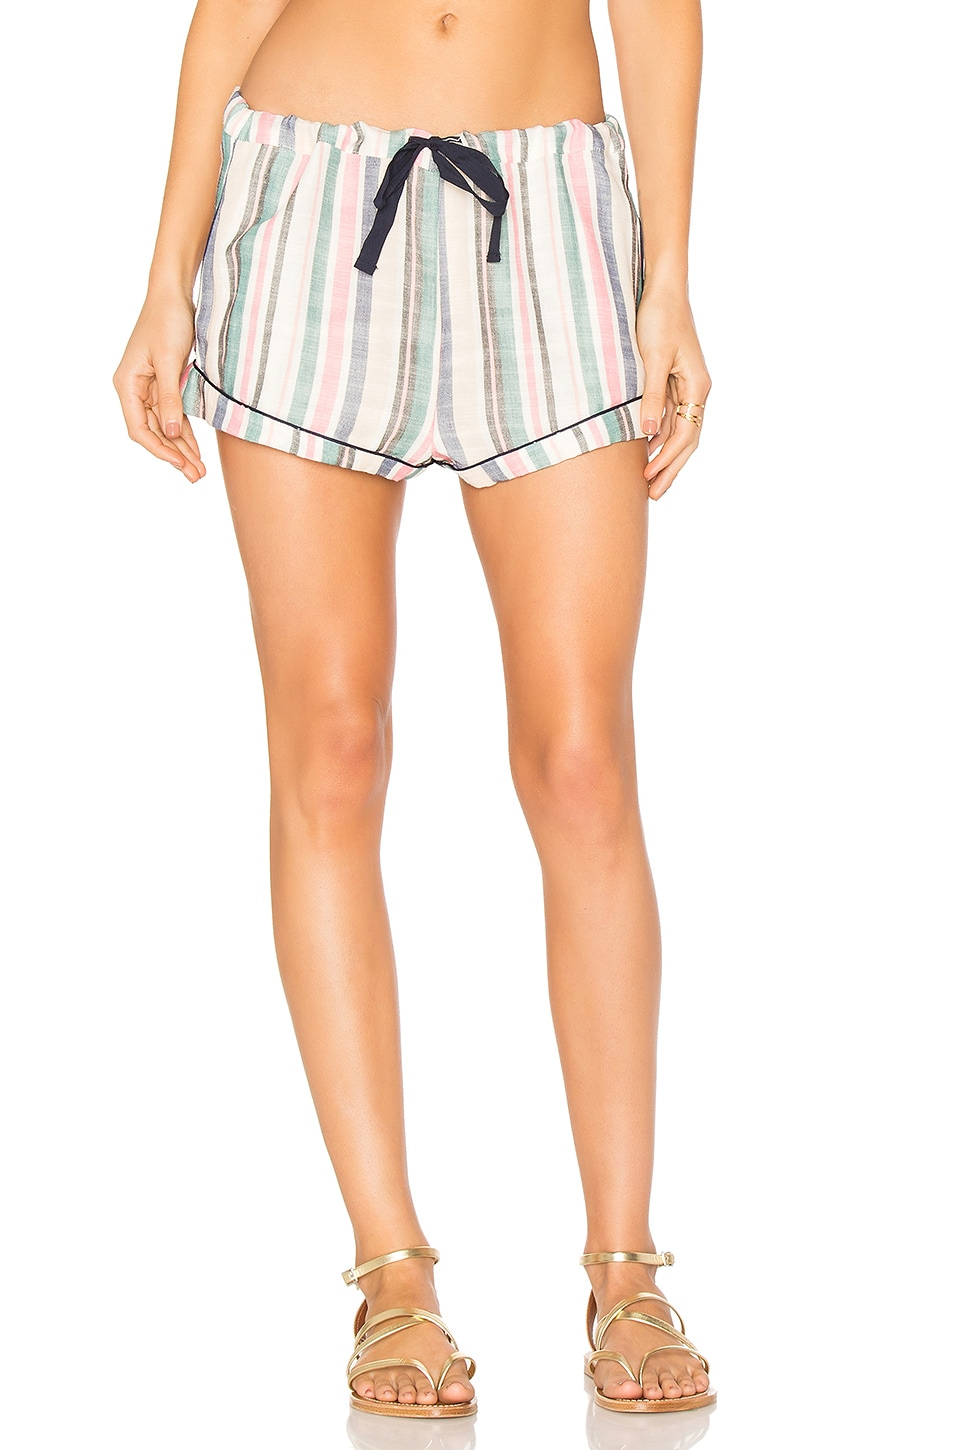 The Tracey Piped Short by Solid & Striped